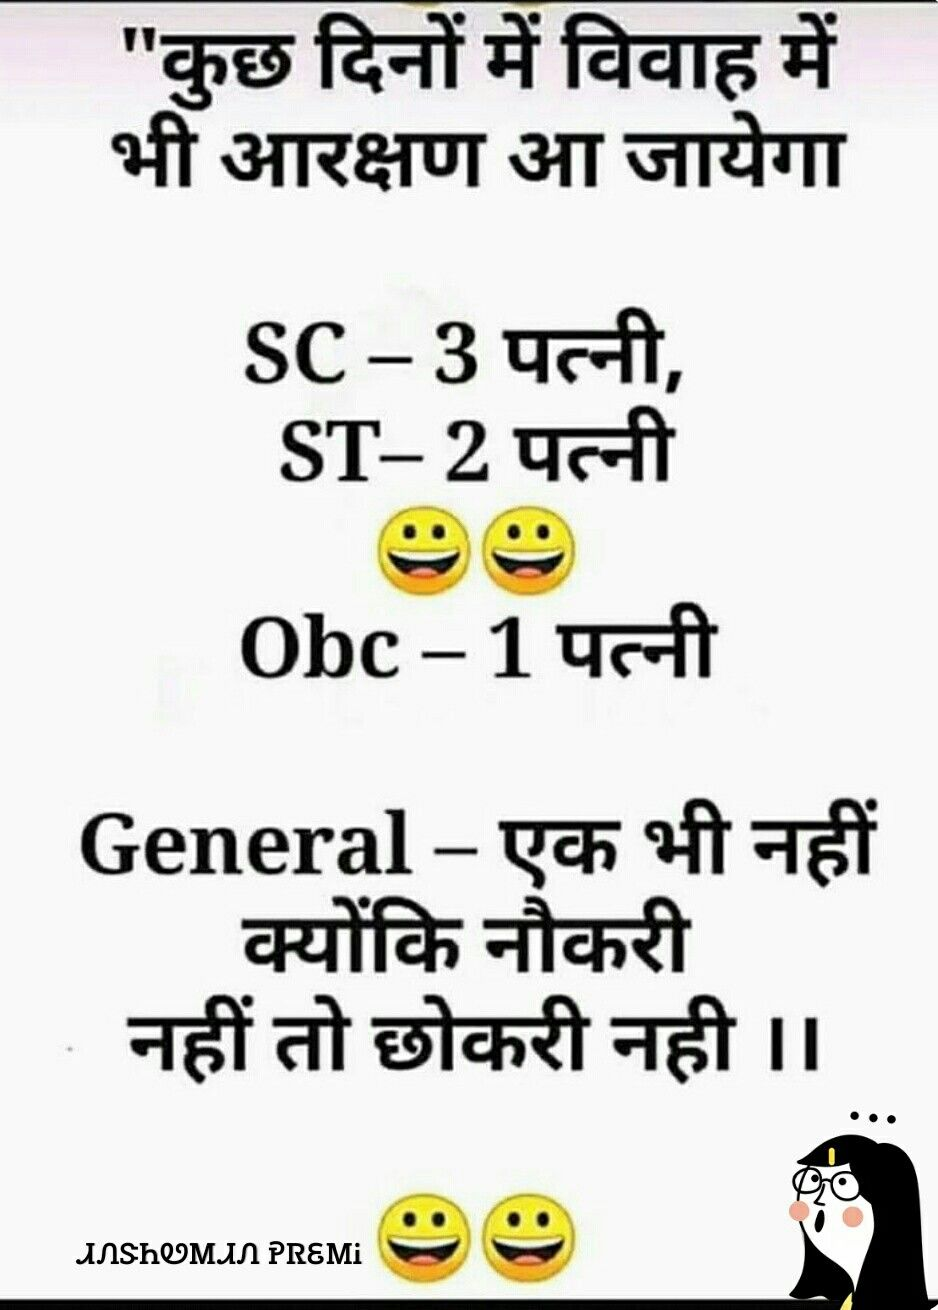 Best Funny Comments On Friends Photos In Hindi : funny, comments, friends, photos, hindi, Anshuman, Premi, Hindi, Jokes, Funny, Hindi,, School, Jokes,, Friend, Quotes